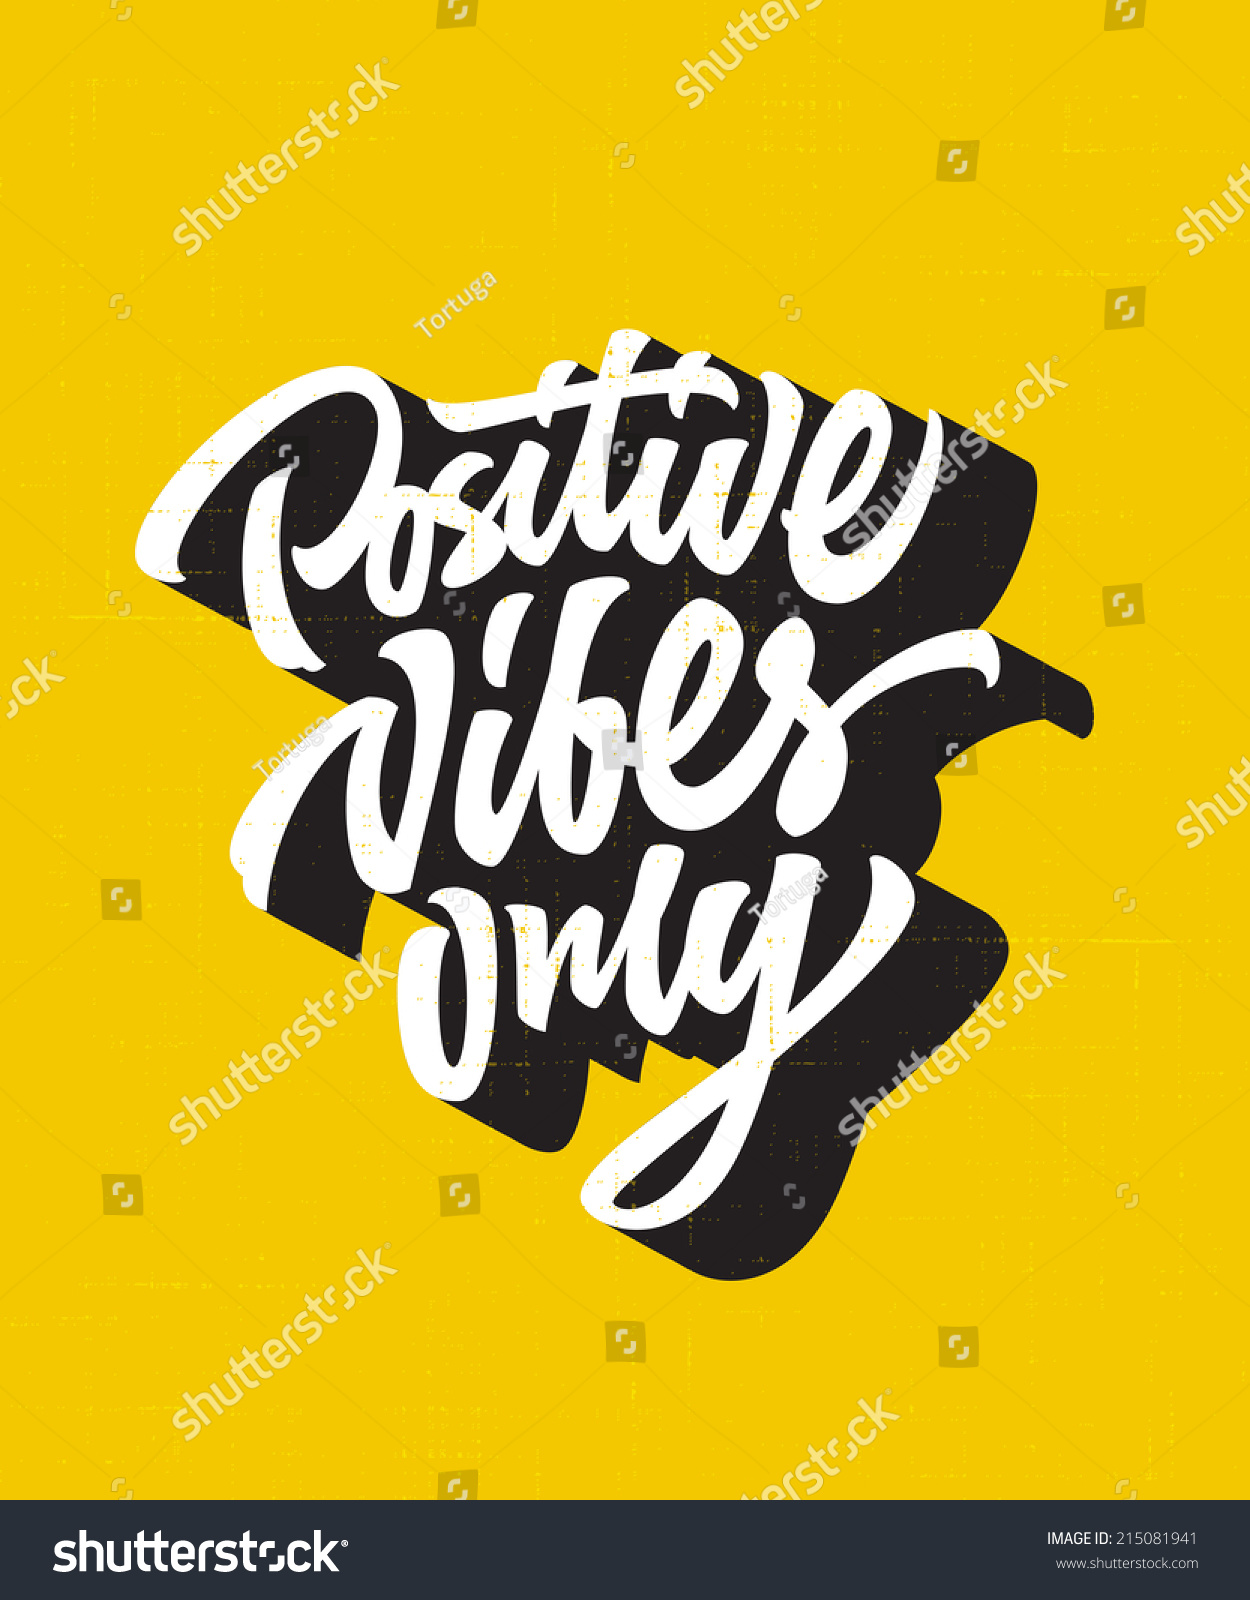 Only Positive Vibes For Everyone Find More Positive: Positive Vibes Only Custom Hand Lettering Apparel T-Shirt